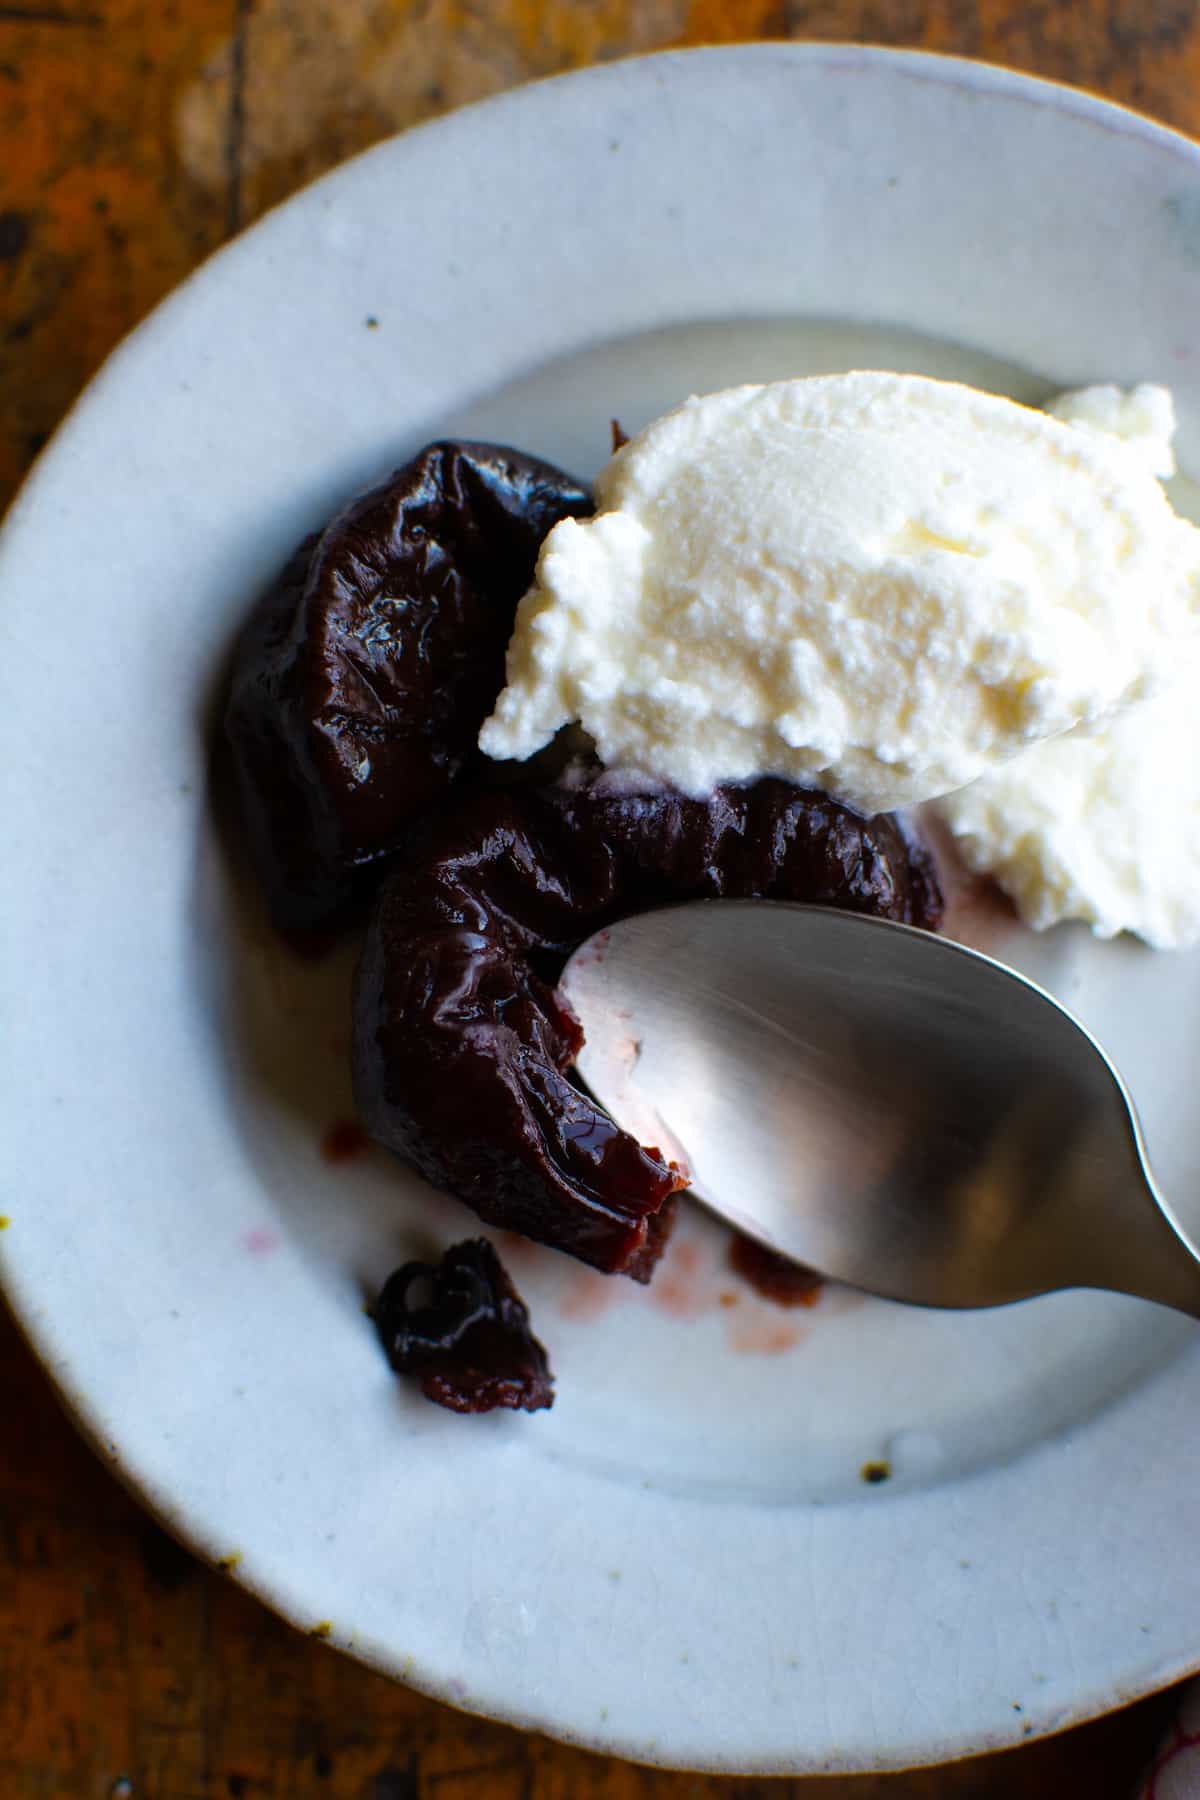 A white plate on a wood table with tequila-soaked prunes and a scoop of ricotta cheese.